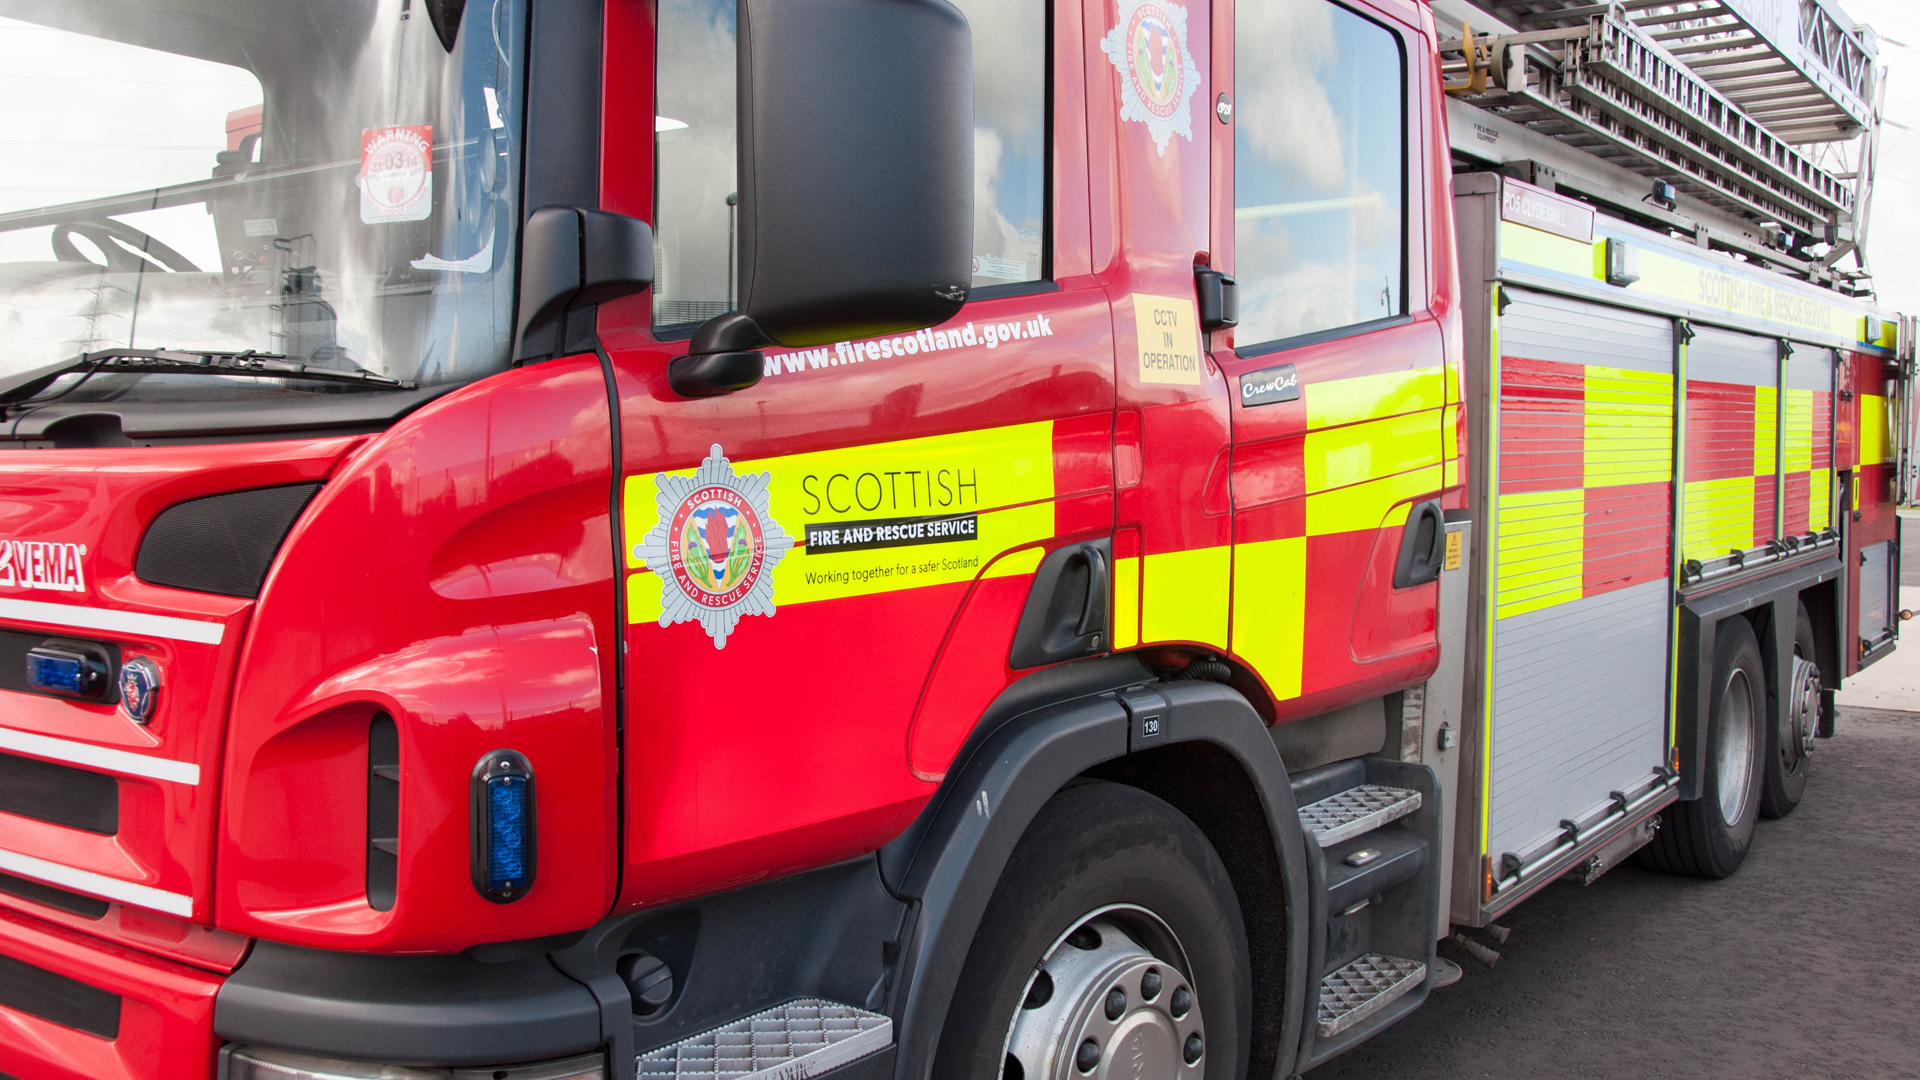 Over 6,600 home fire safety visits delivered across Fife